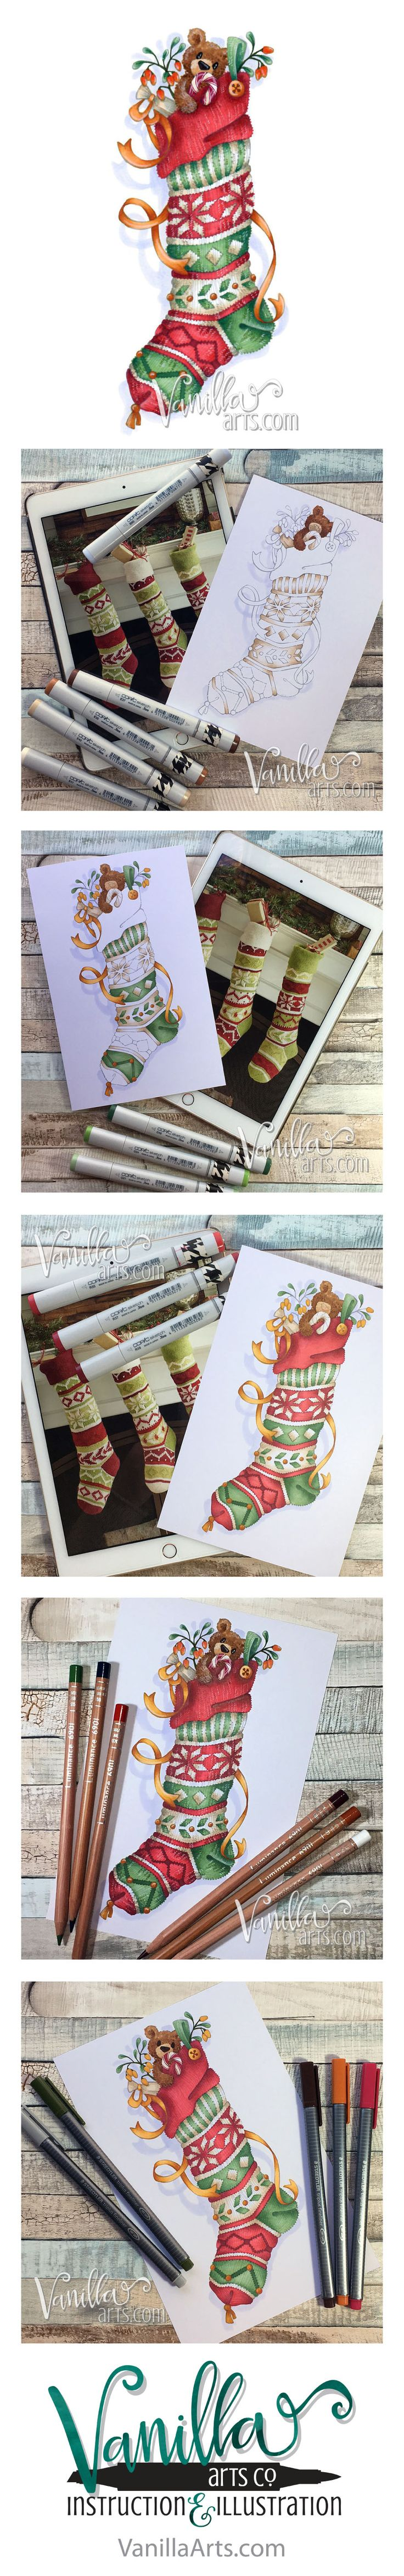 Fair Isle Stocking- a challenge level Copic Marker & colored pencil class | VanillaArts.com